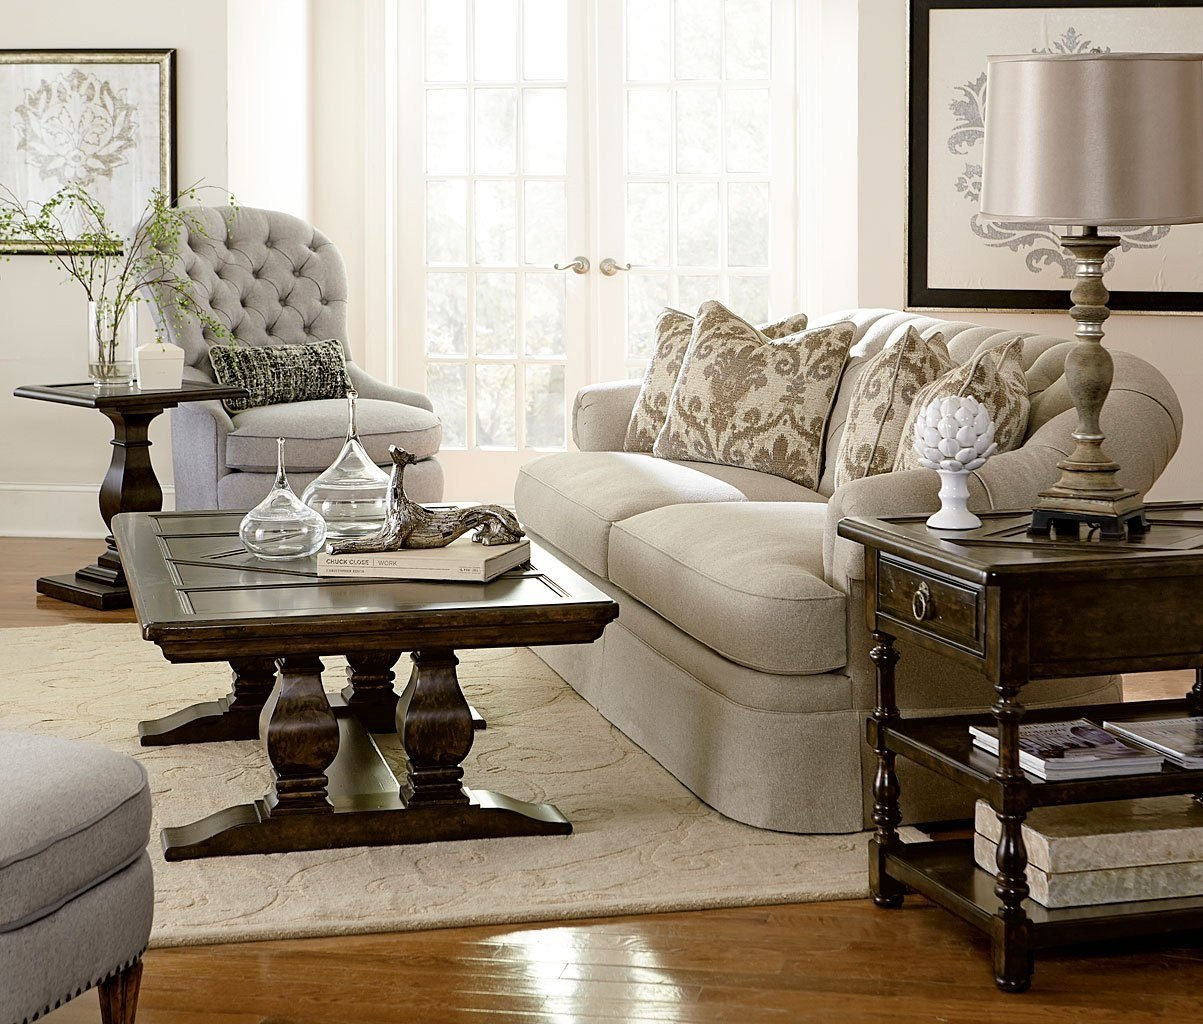 Collection One Oxford Living Room Set ART Furniture